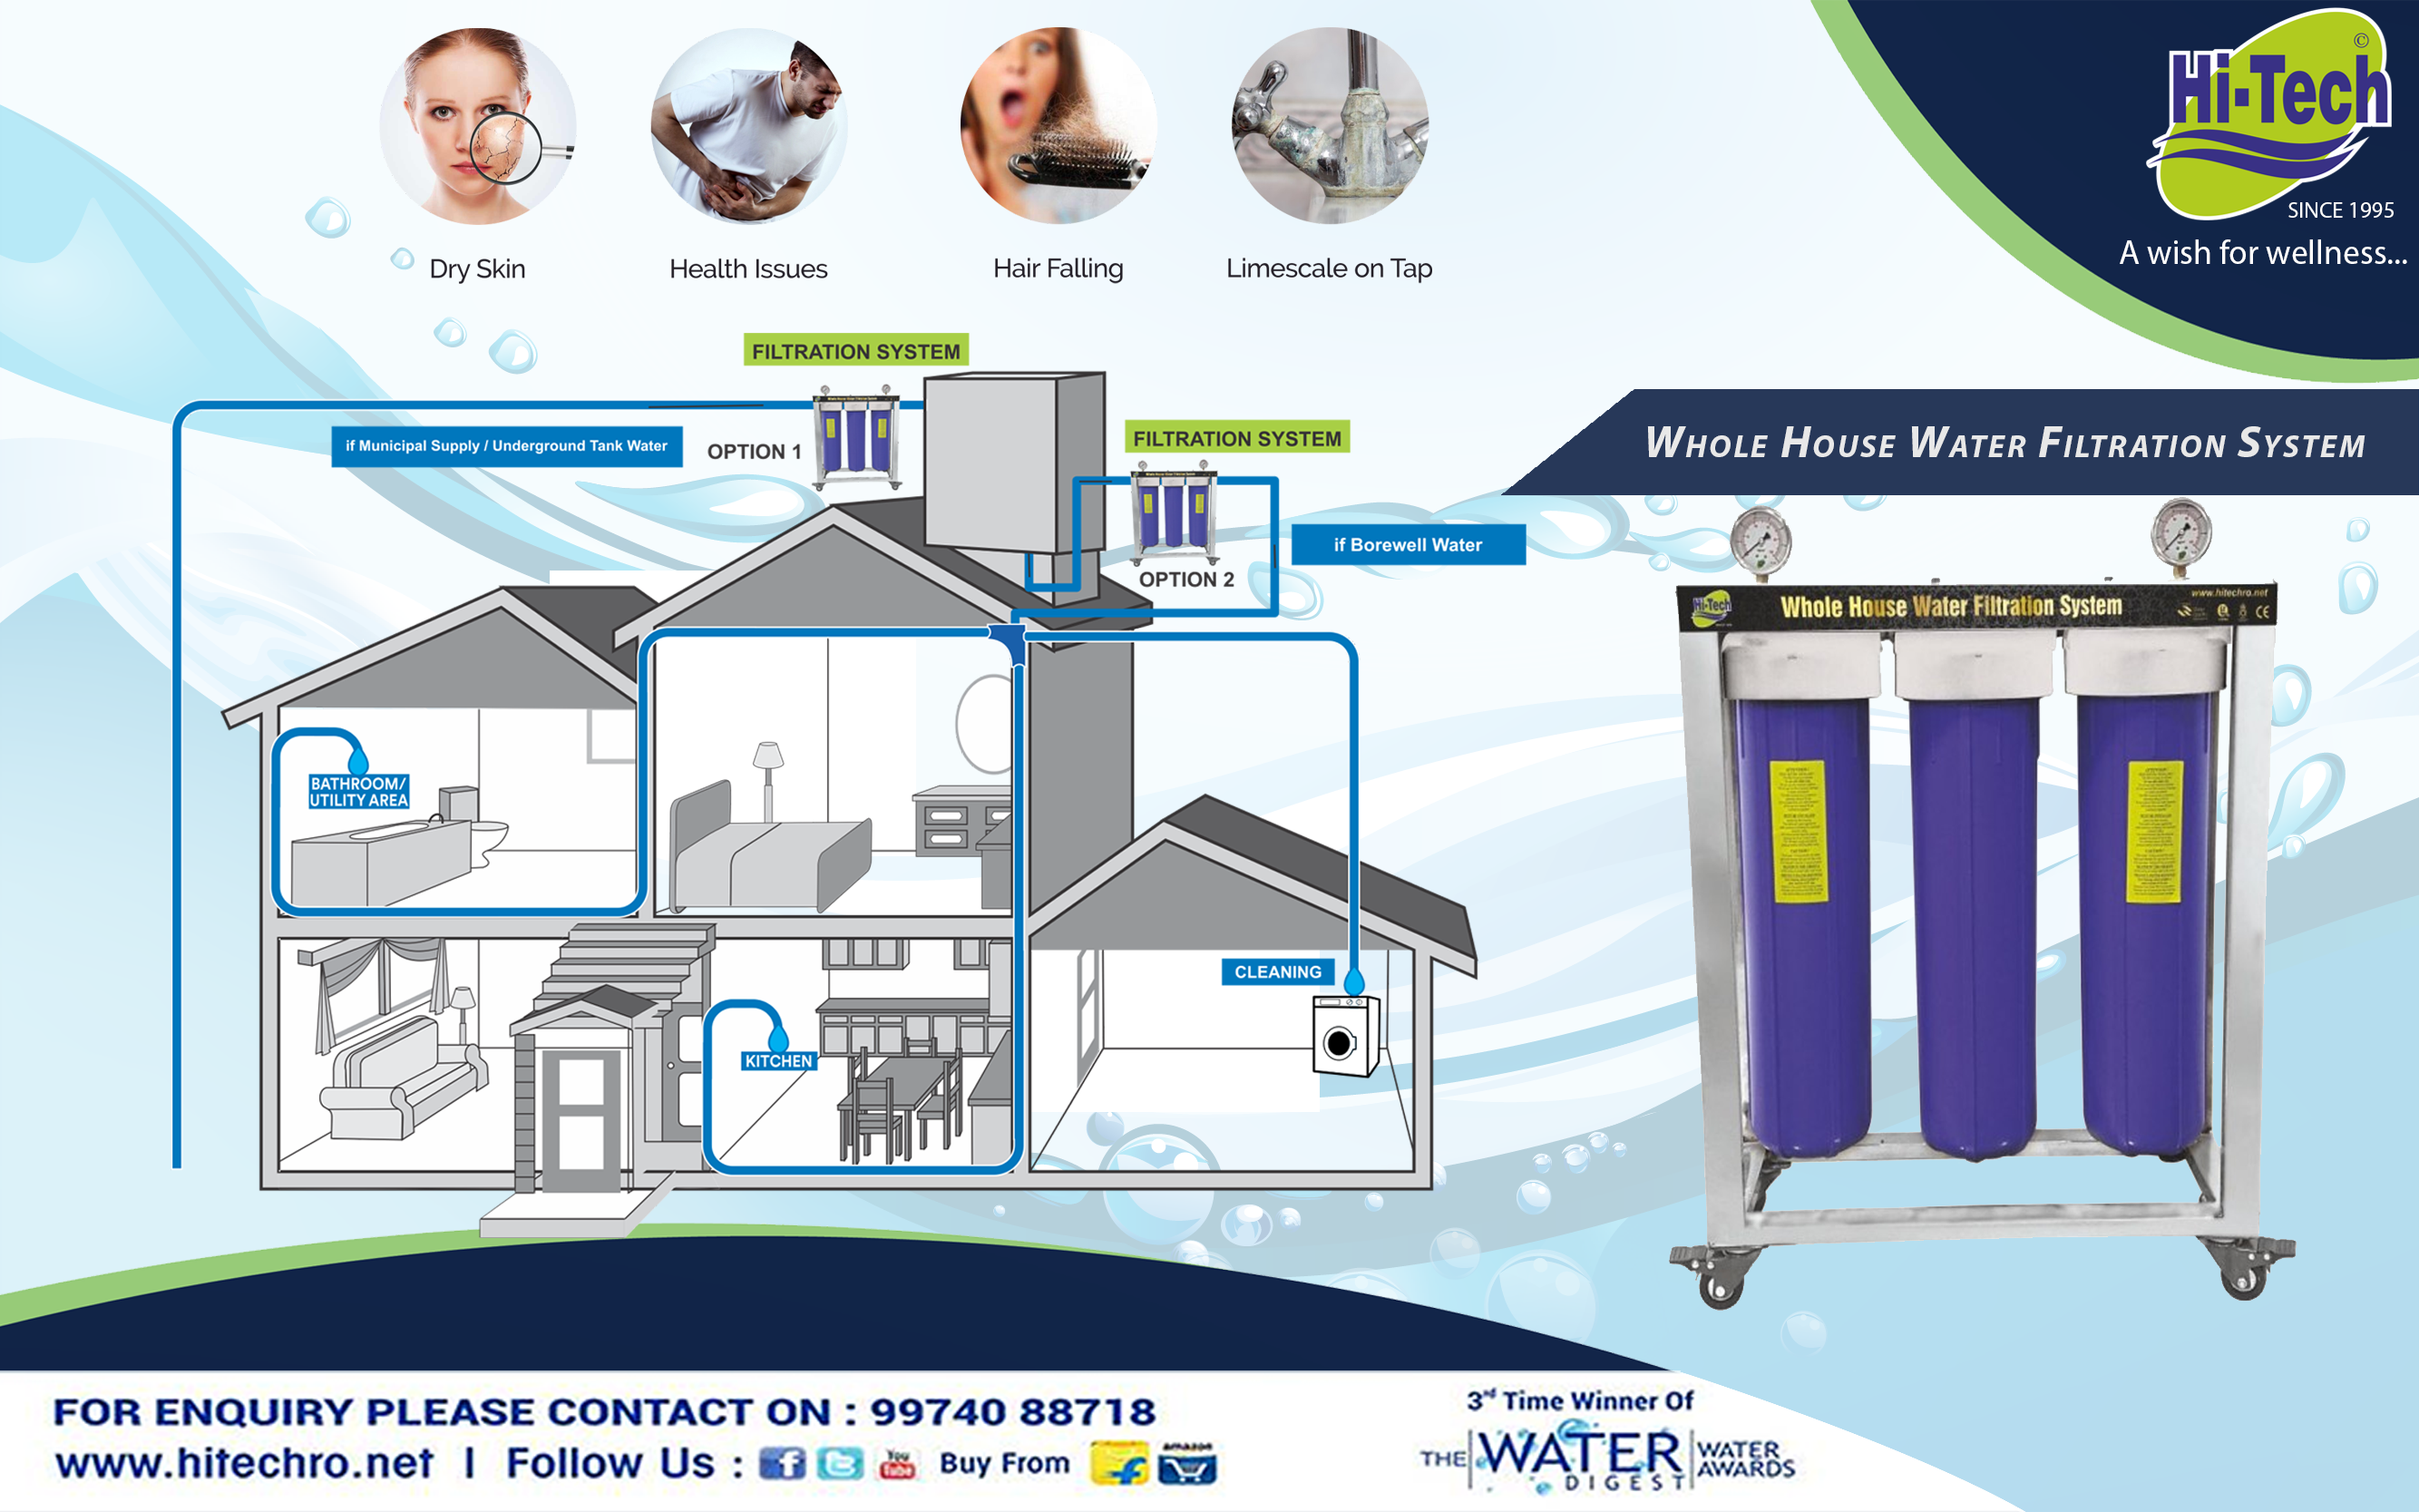 Impact of Water on Your Home Uitilities and Body